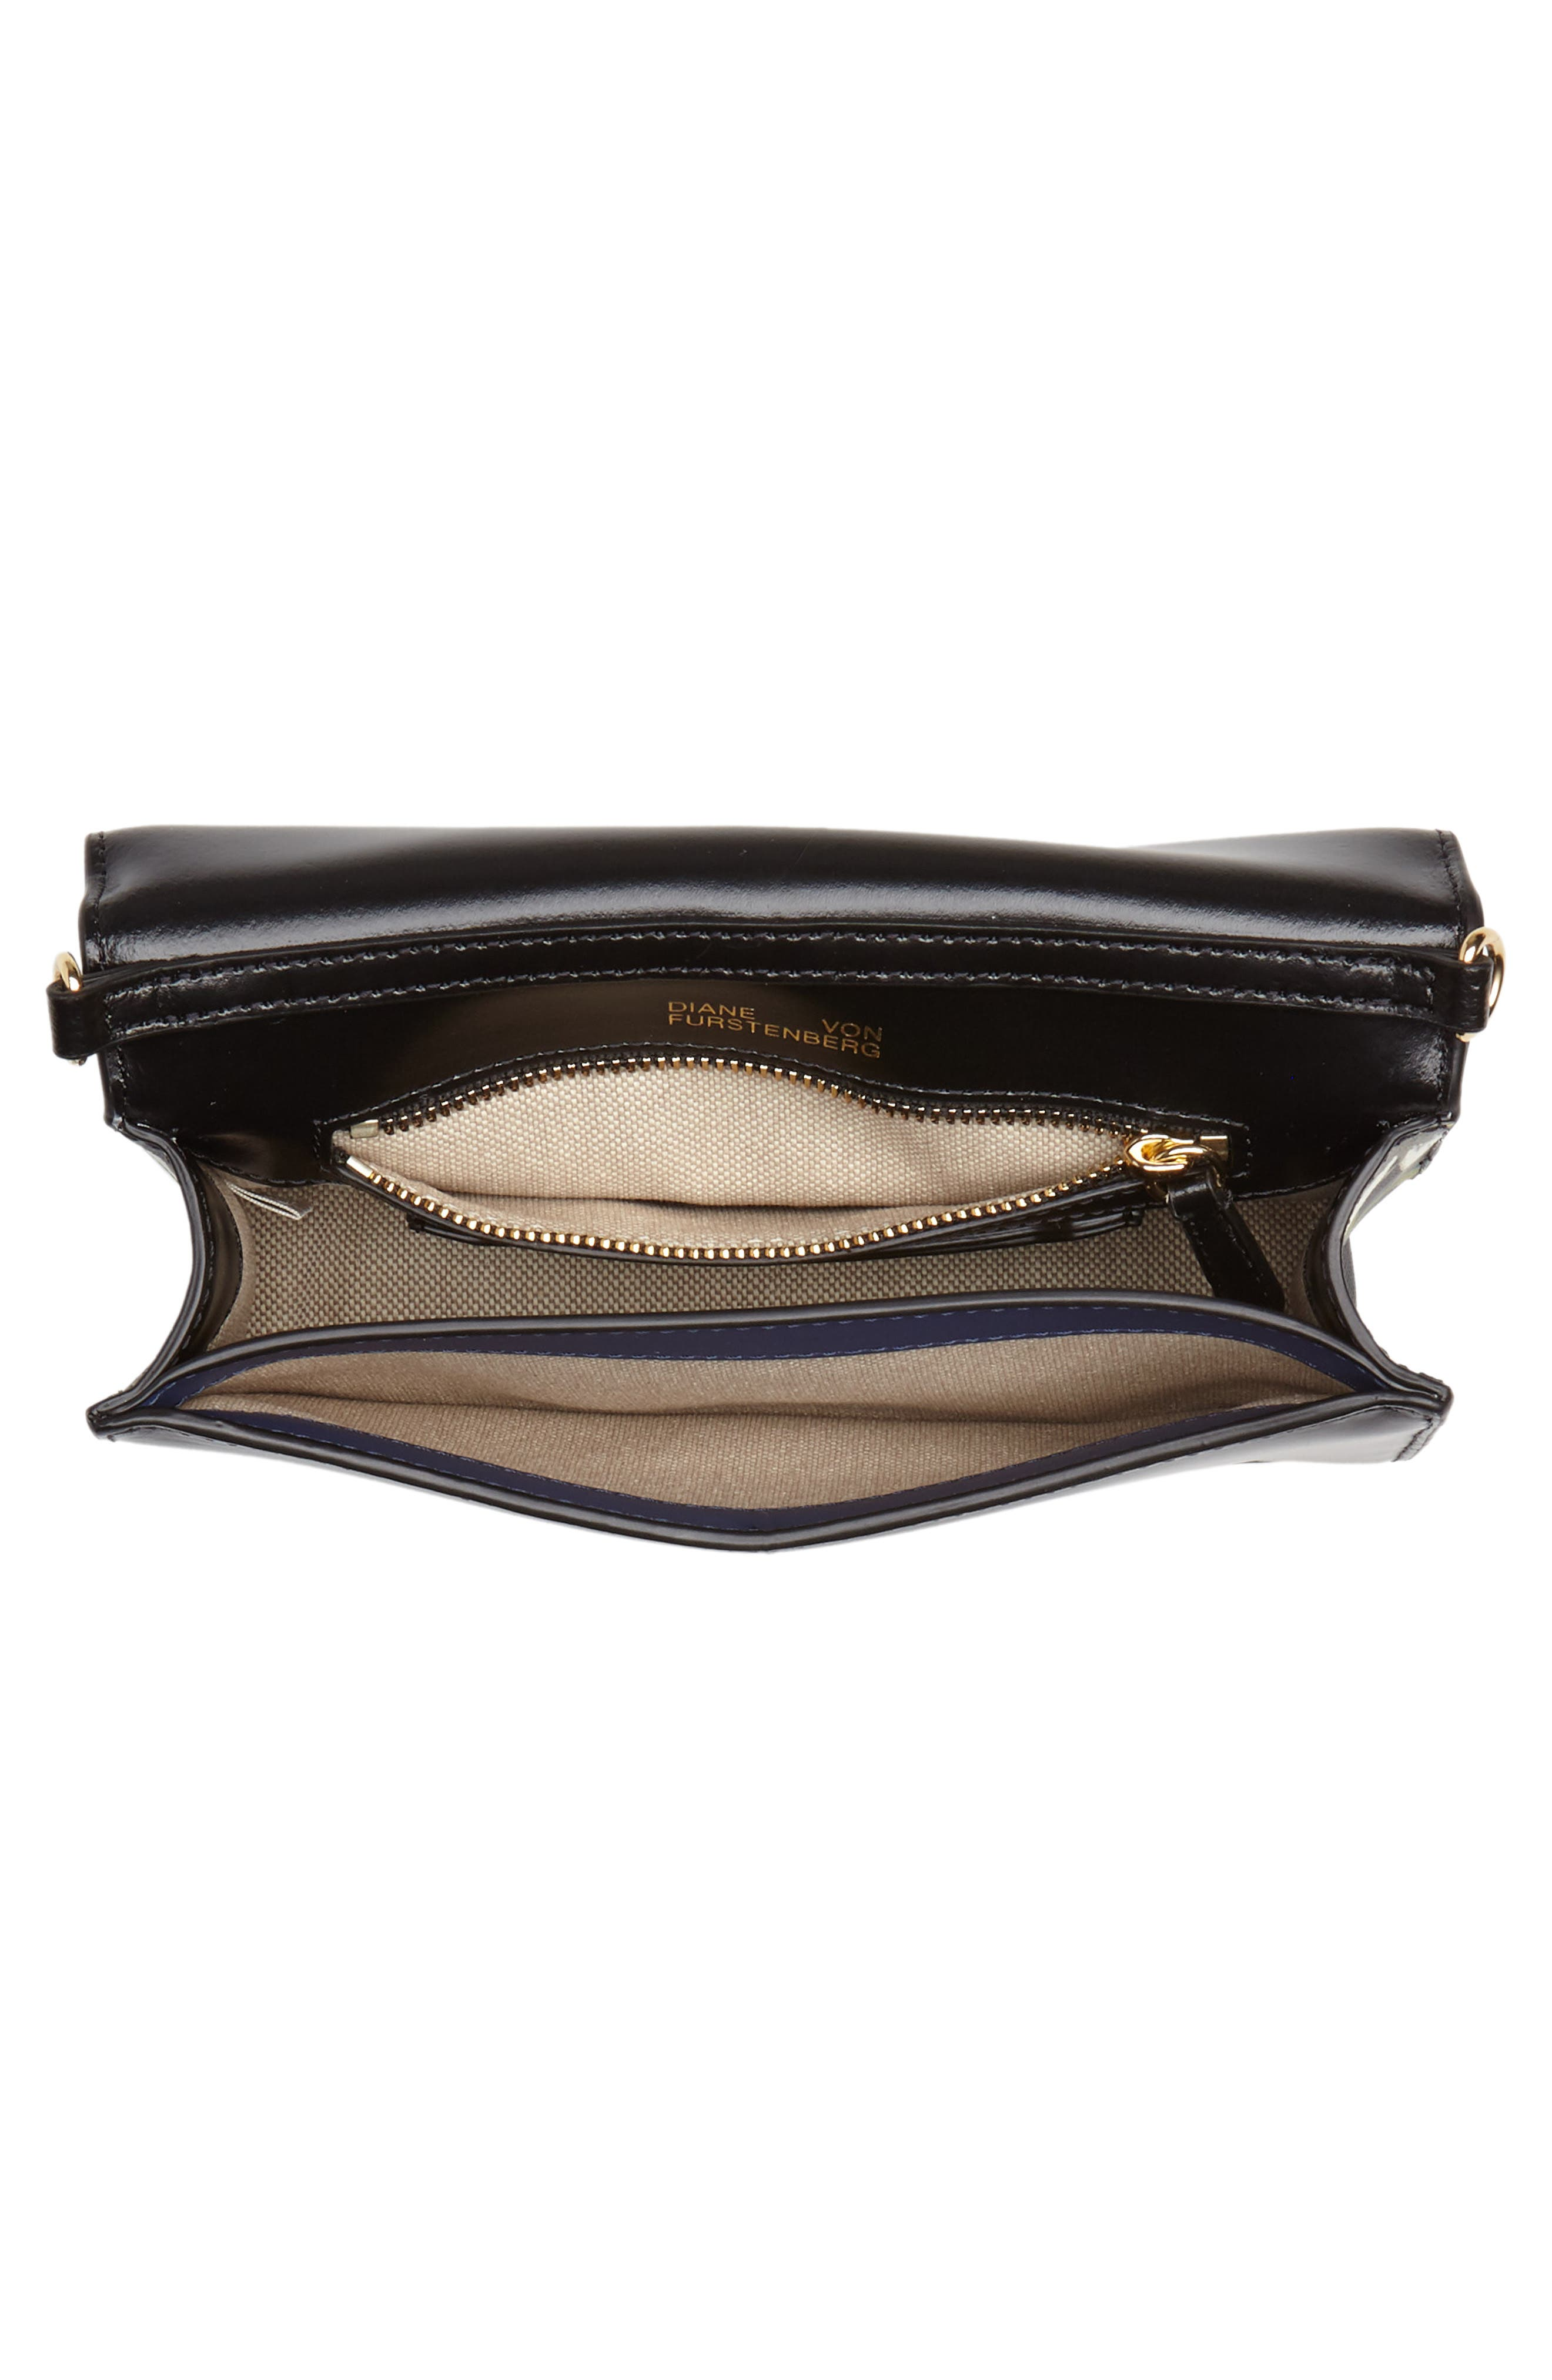 Soirée Leather Convertible Crossbody Bag,                             Alternate thumbnail 5, color,                             Harlow Black